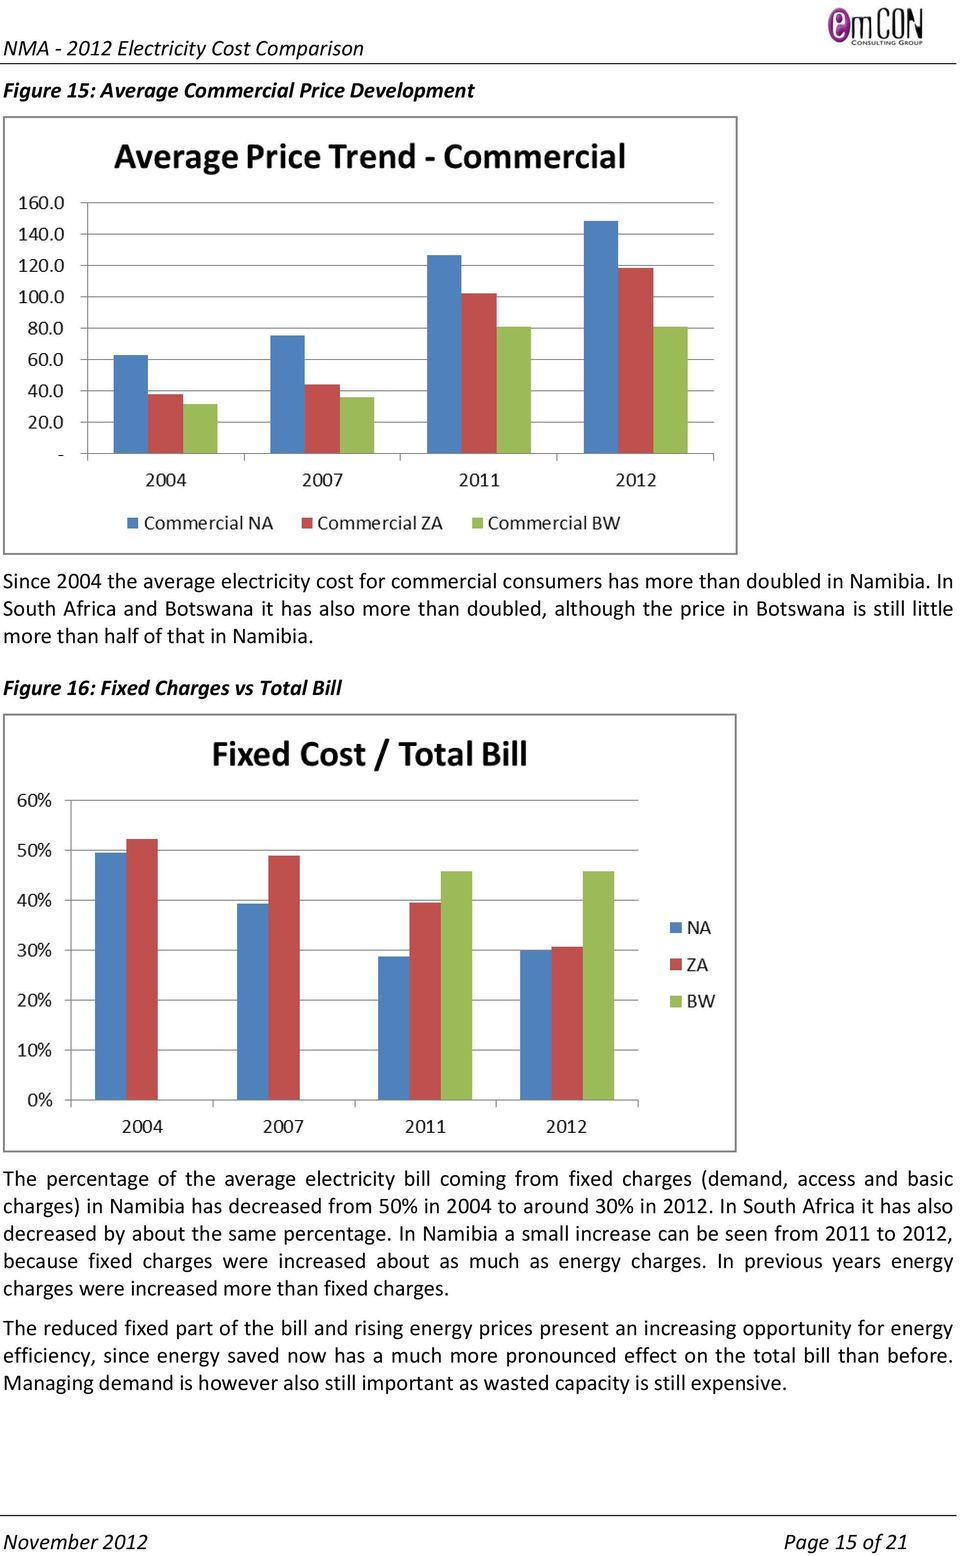 Figure 16: Fixed Charges vs Total Bill The percentage of the average electricity bill coming from fixed charges (demand, access and basic charges) in Namibia has decreased from 50% in 2004 to around